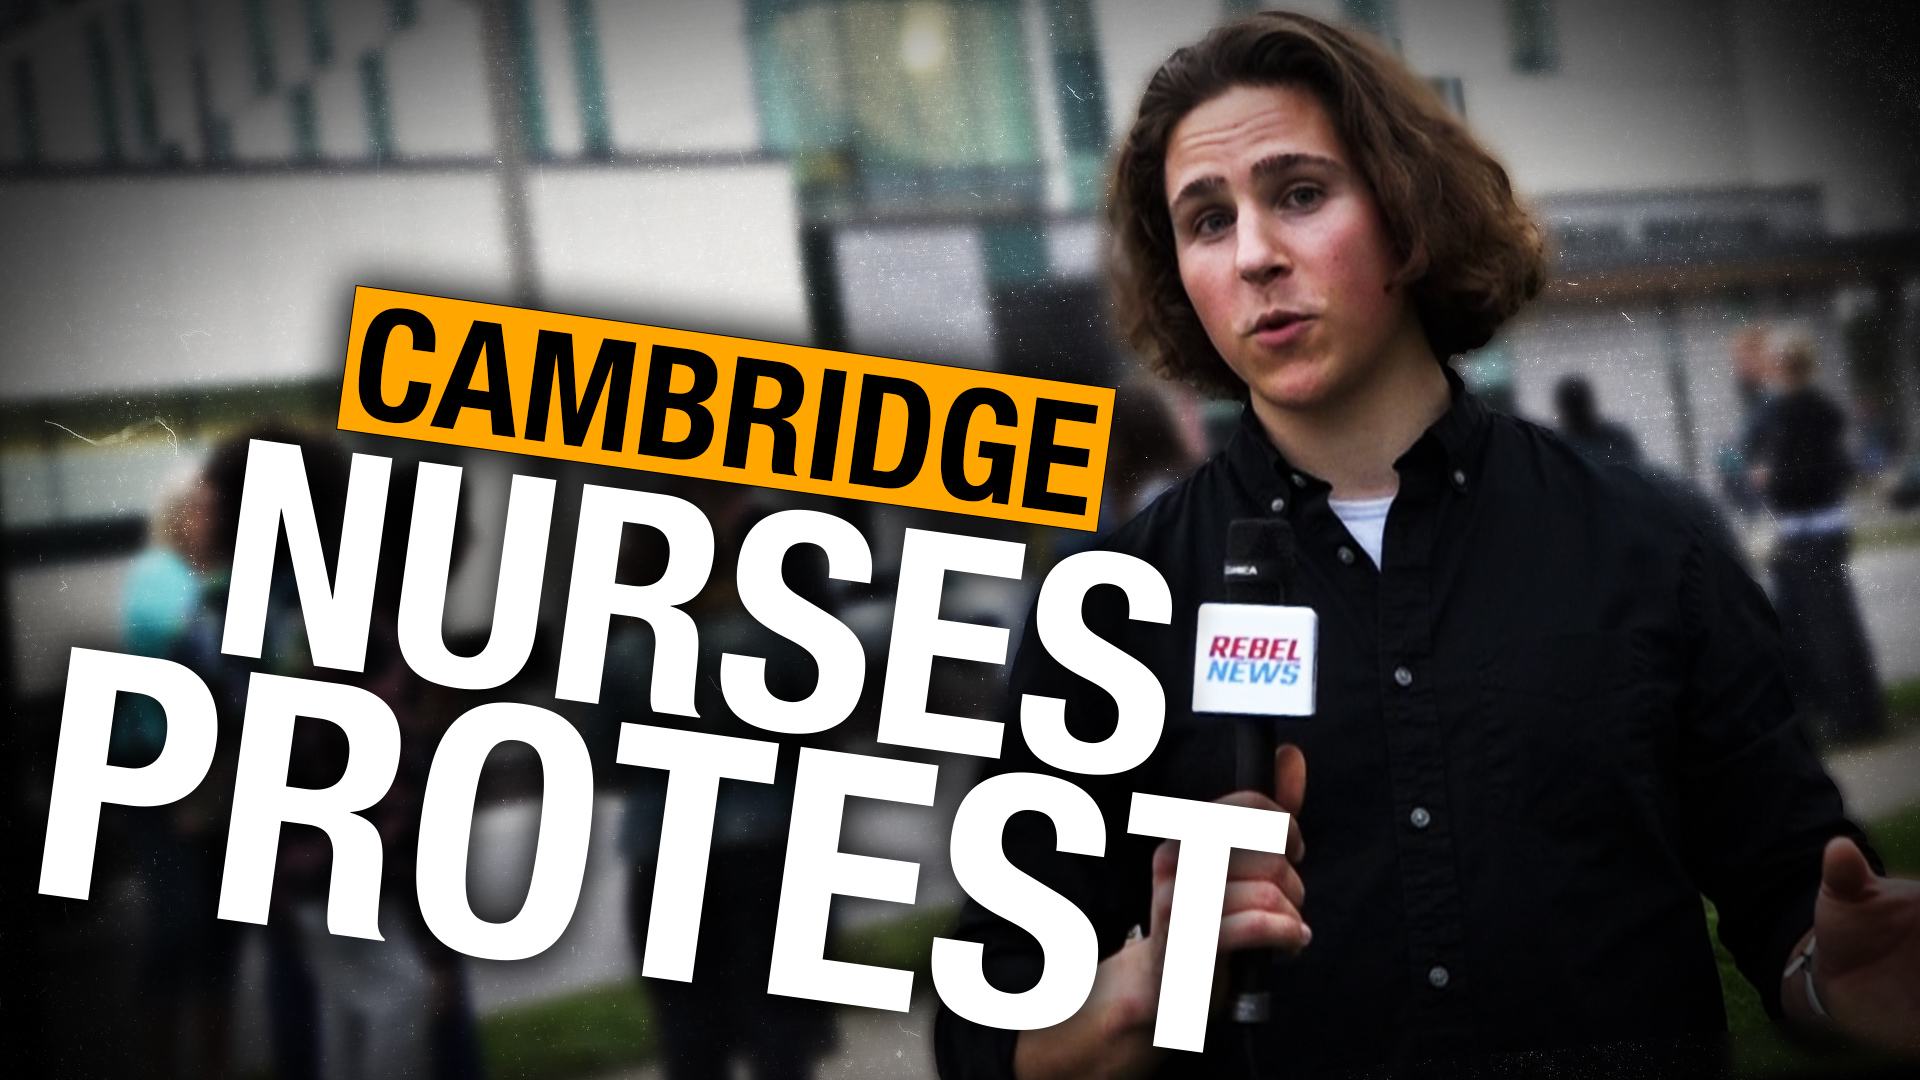 Why not just comply? |  Nurses protest against hospital vaccine mandate